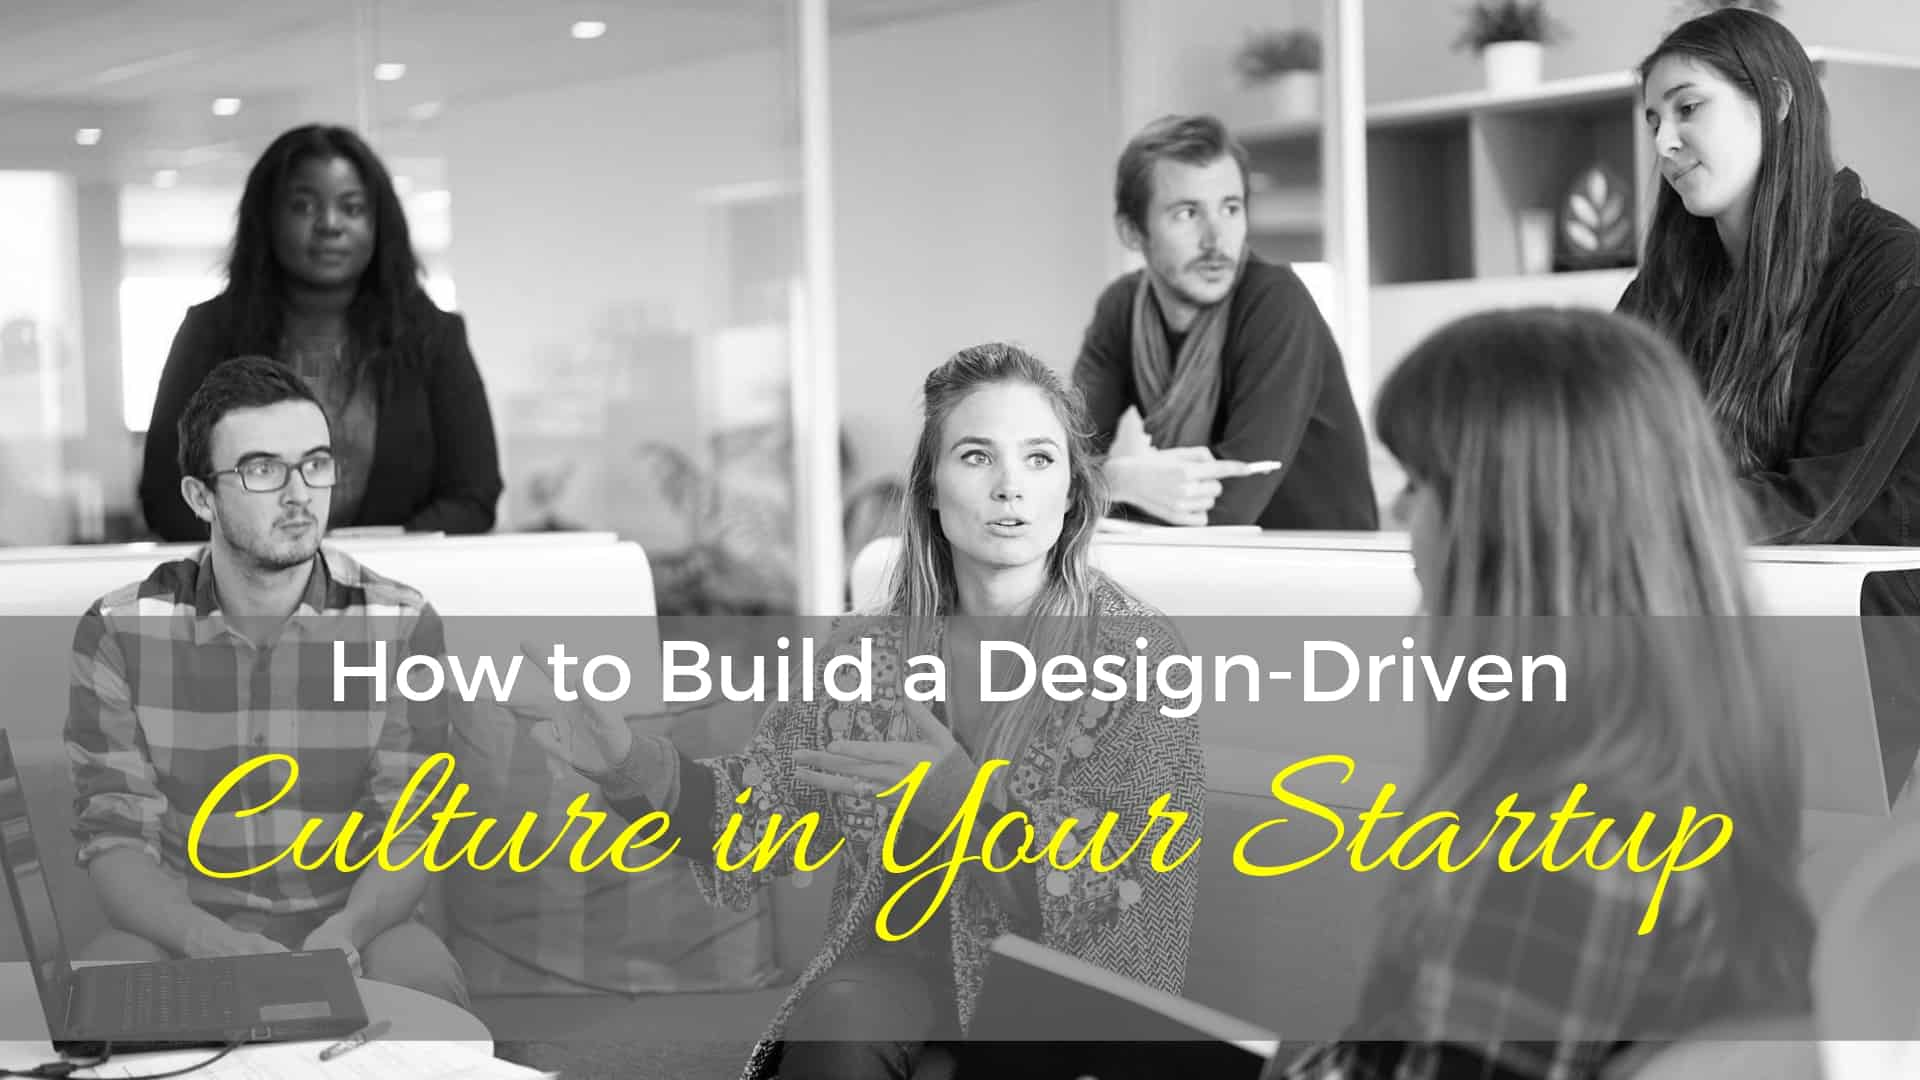 How To Build A Design-Driven Culture In Your Startup